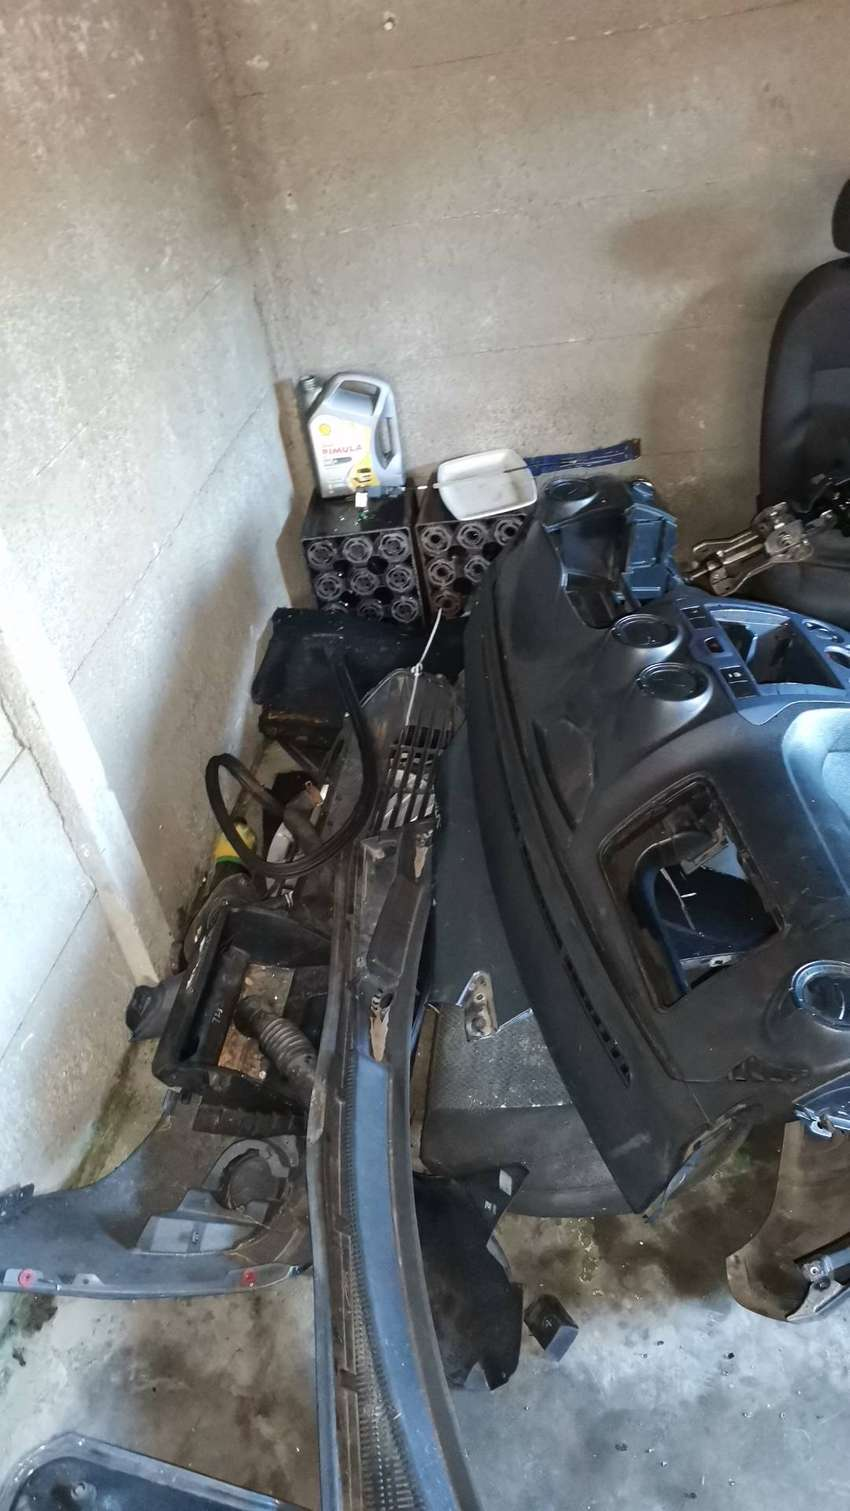 Ford figo 2013 engine Gearbox and all engine spares avialbale